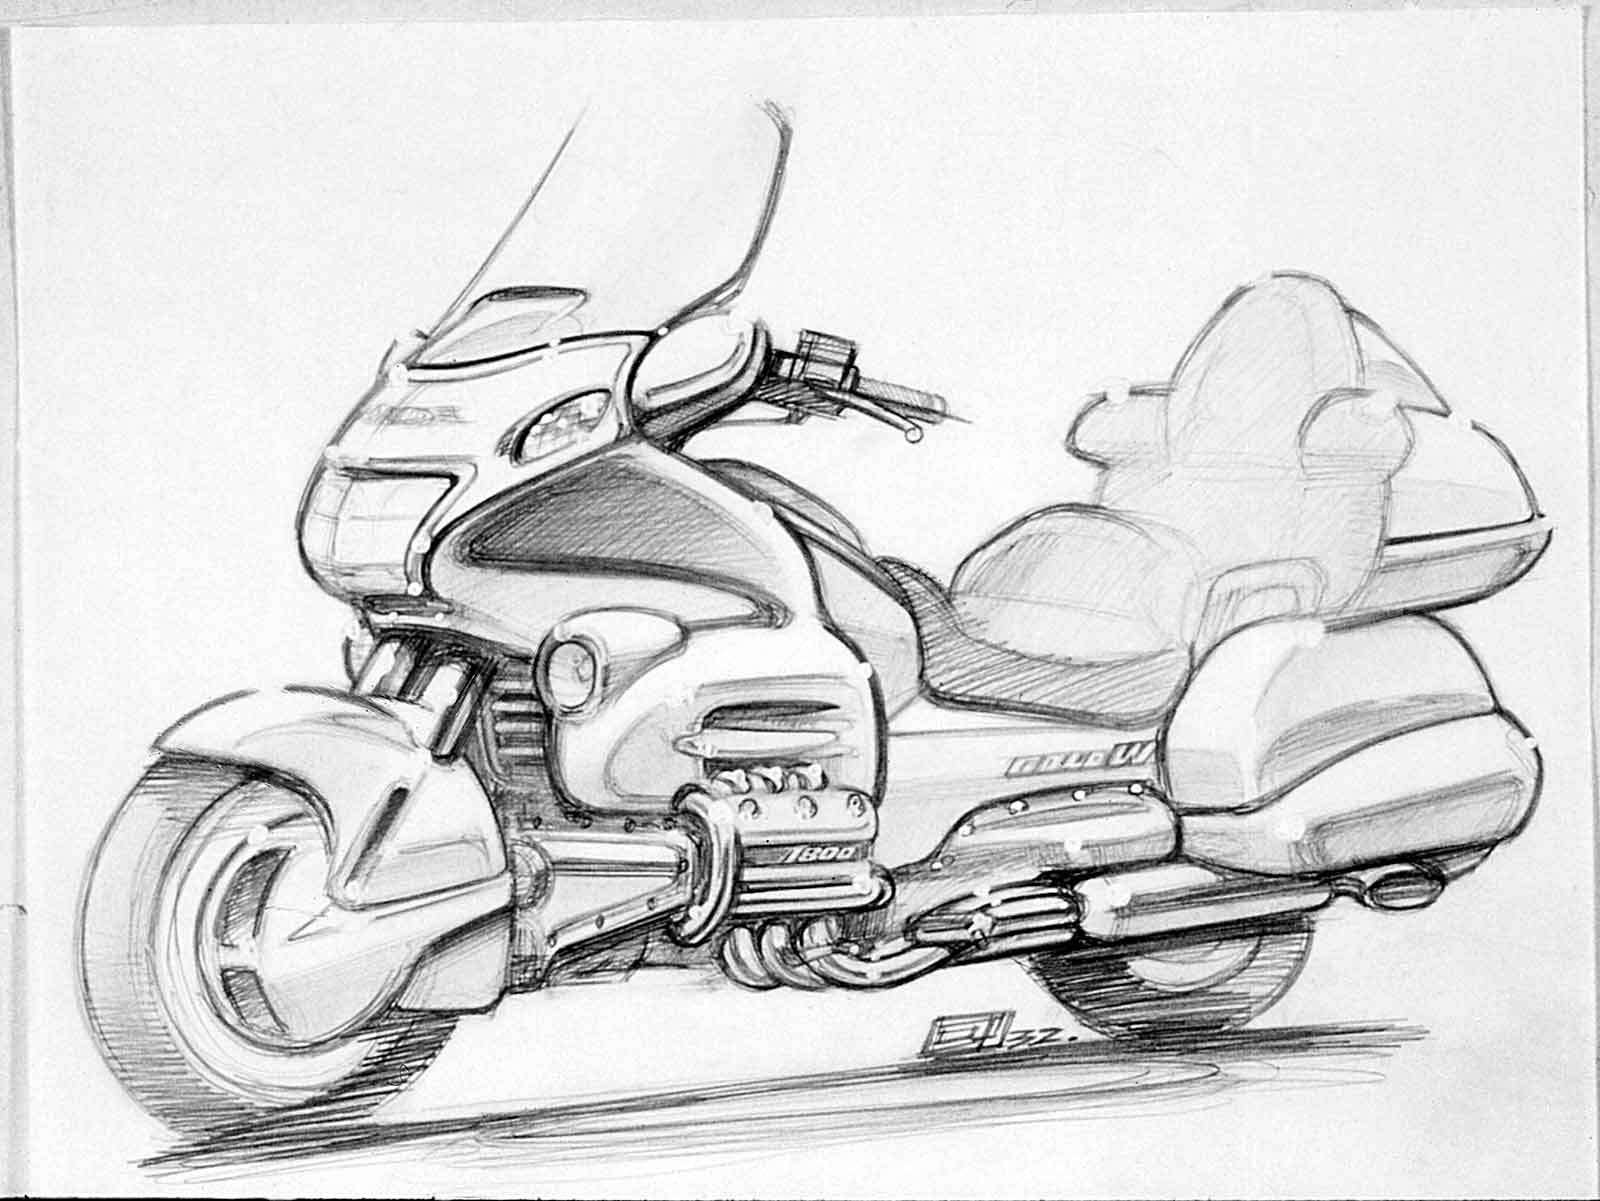 Honda-2001-Gold-Wing-concept-sketch-D